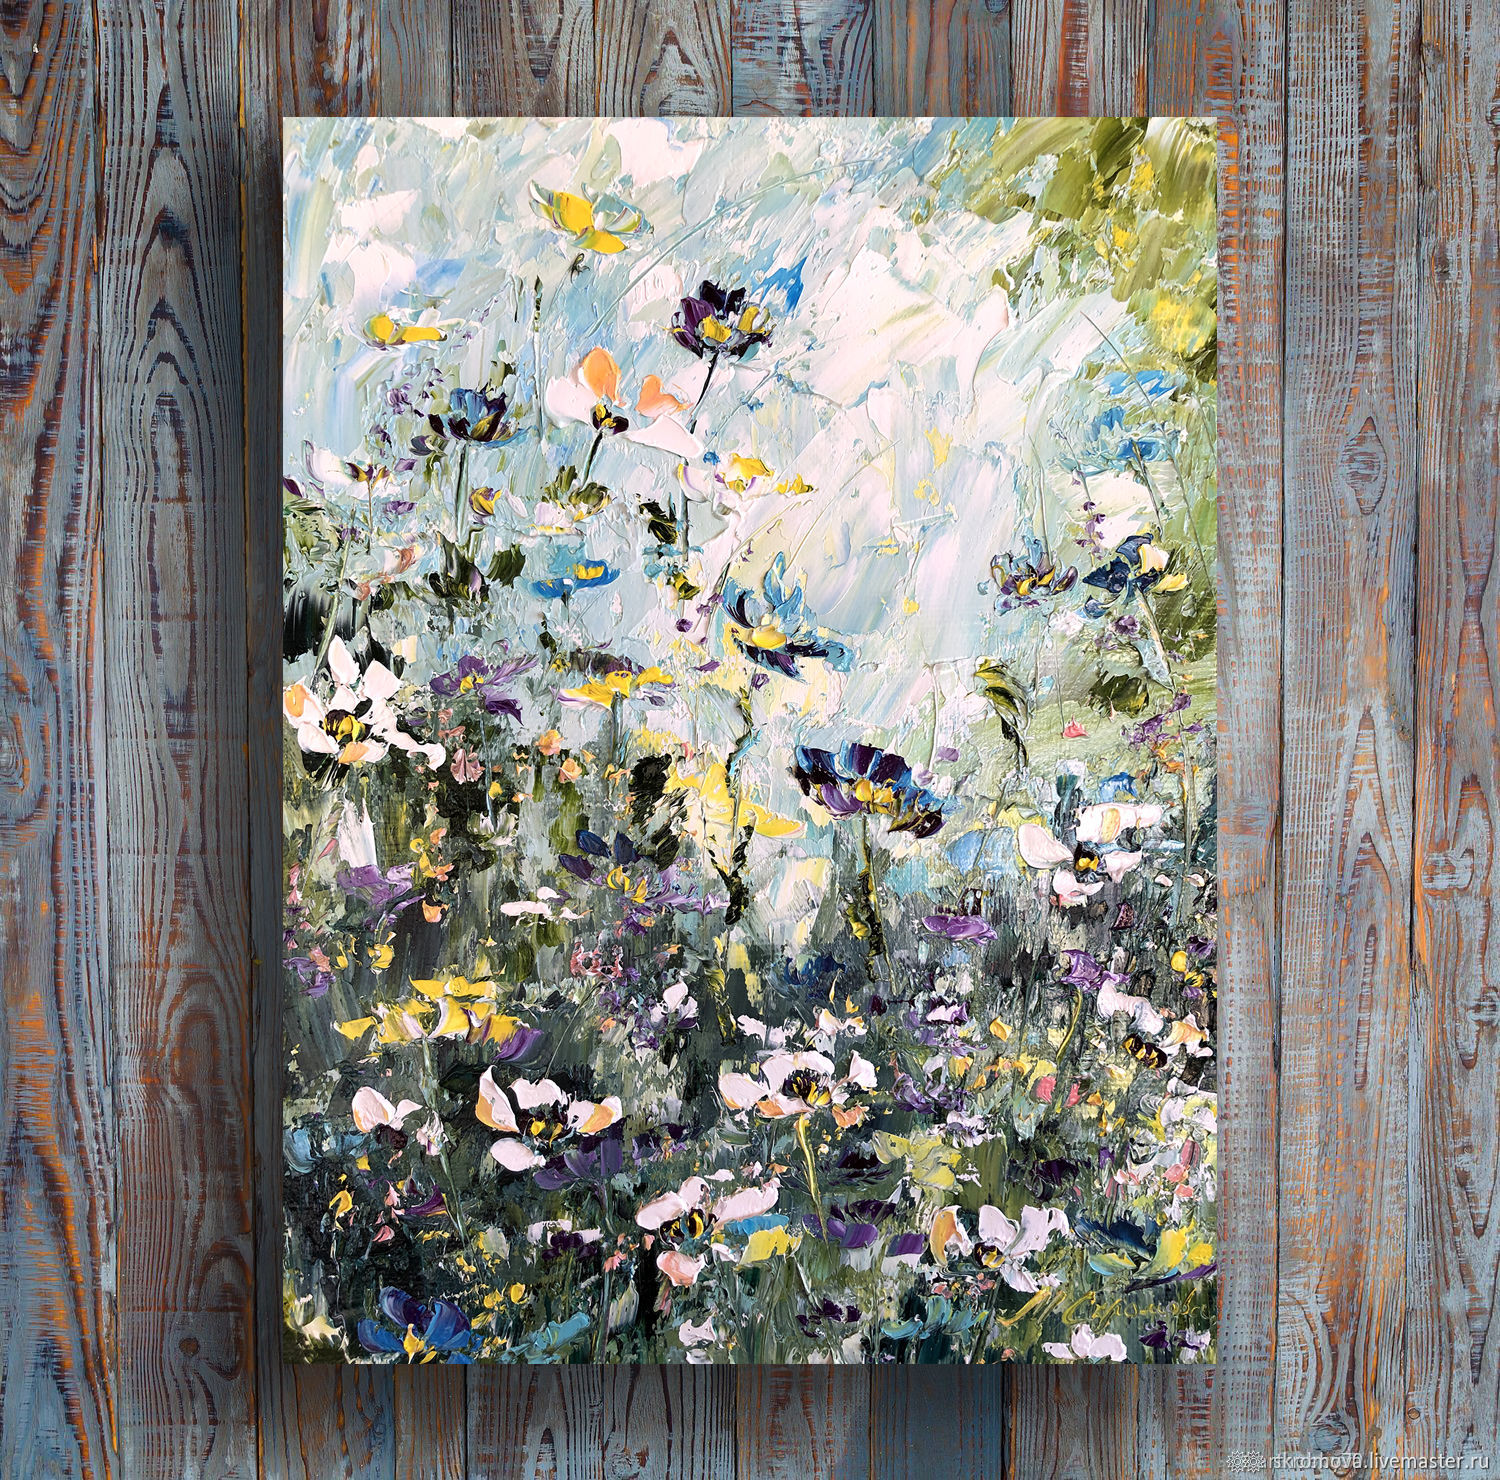 Oil painting Flower oil painting Spring lawn, Pictures, Moscow,  Фото №1